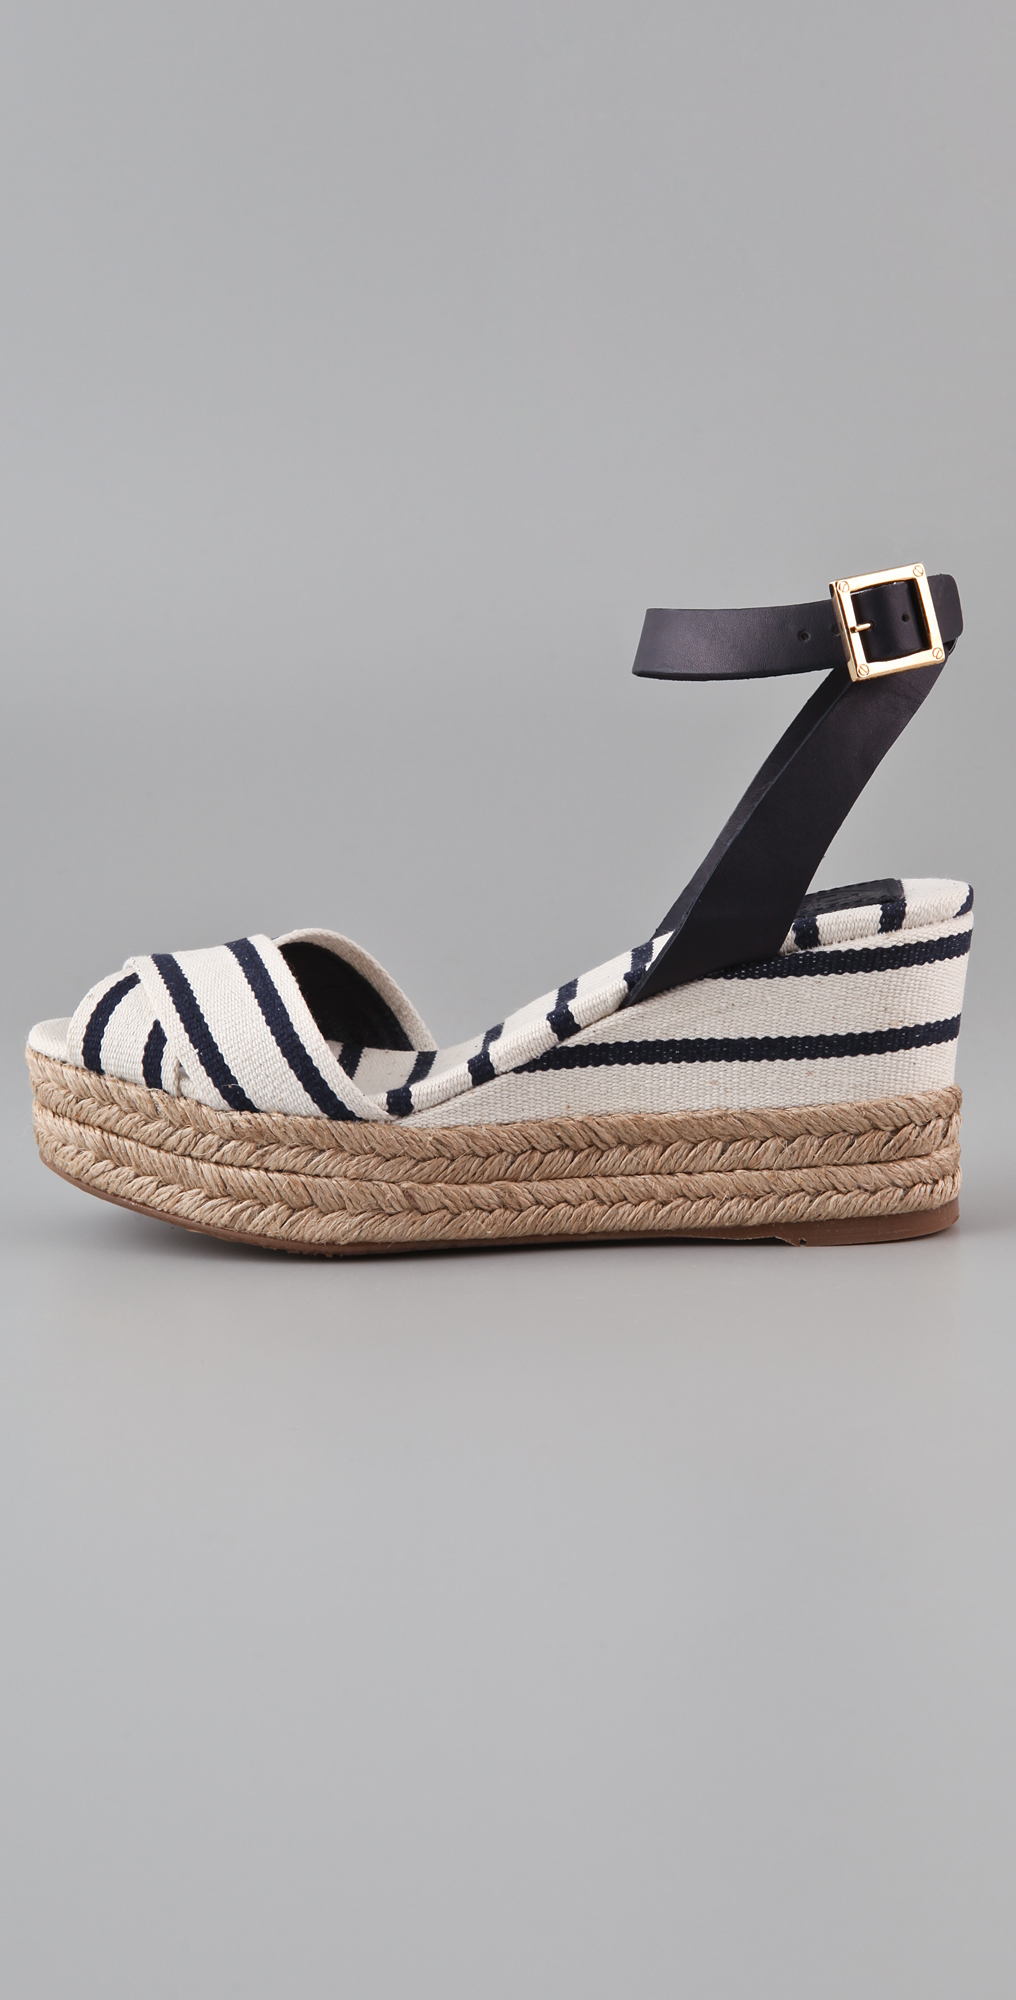 32aeca33813 Tory Burch Karissa Wedge Sandals